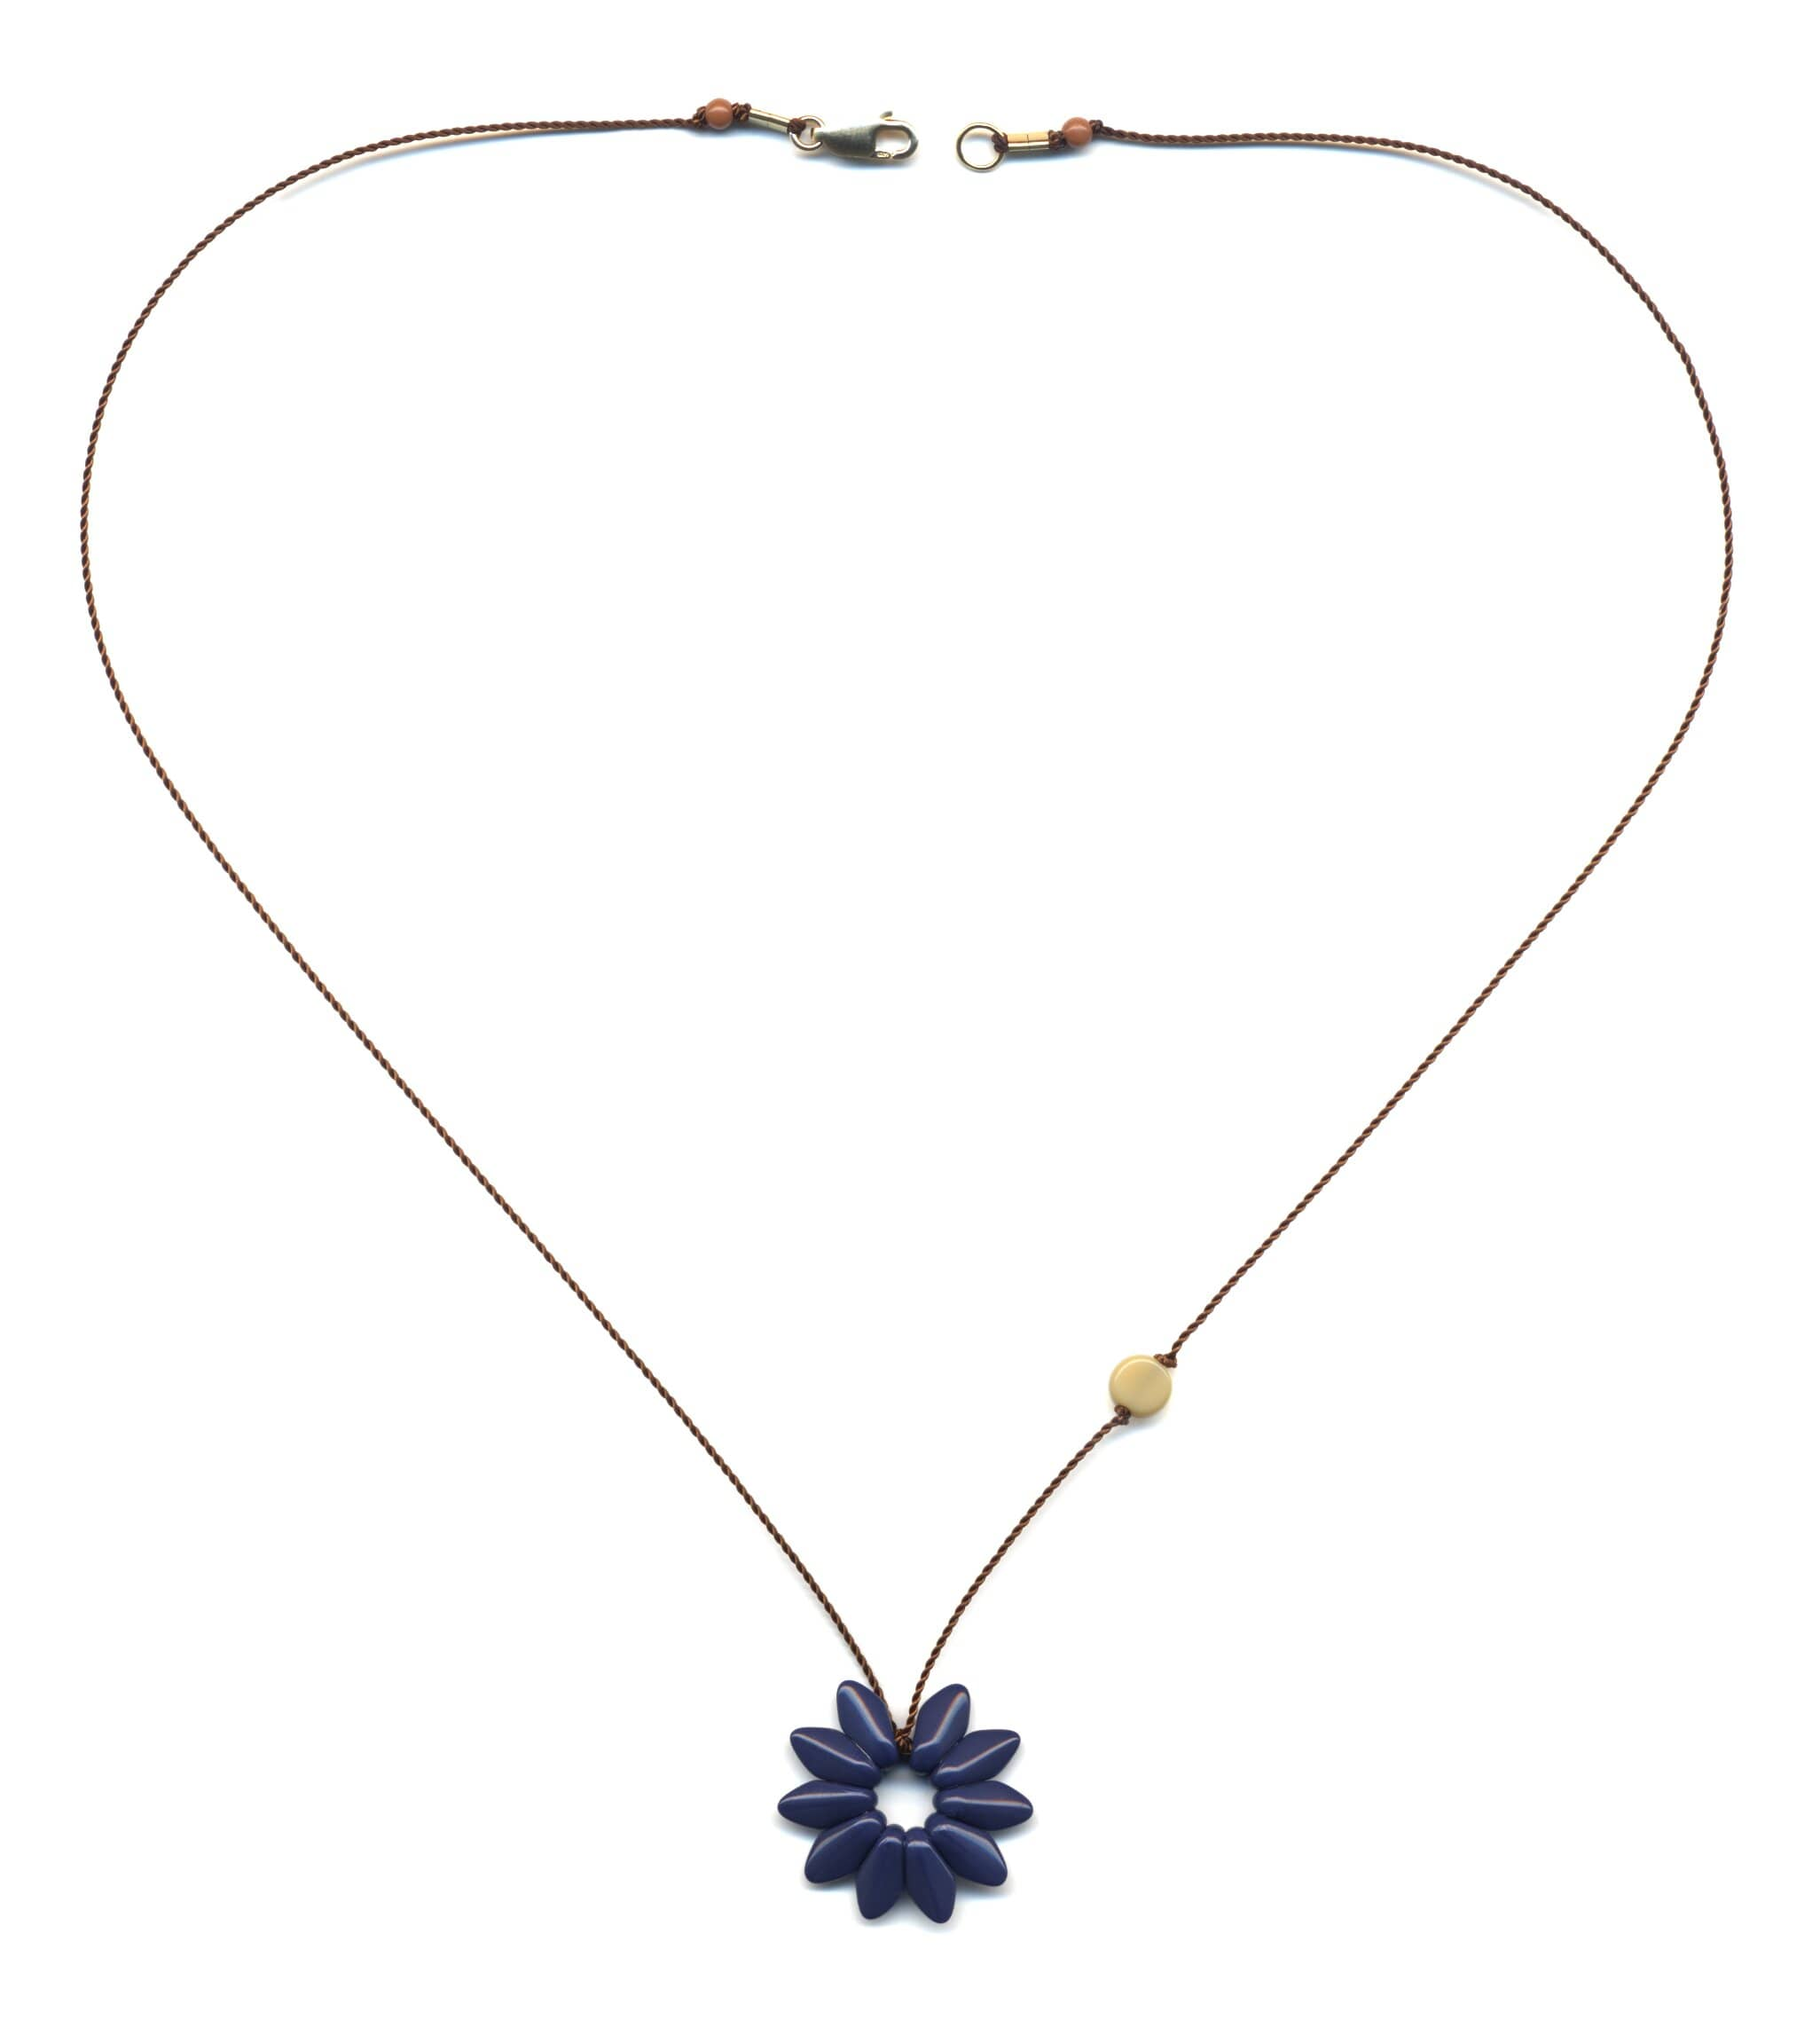 N1879 Small Navy Flower Necklace